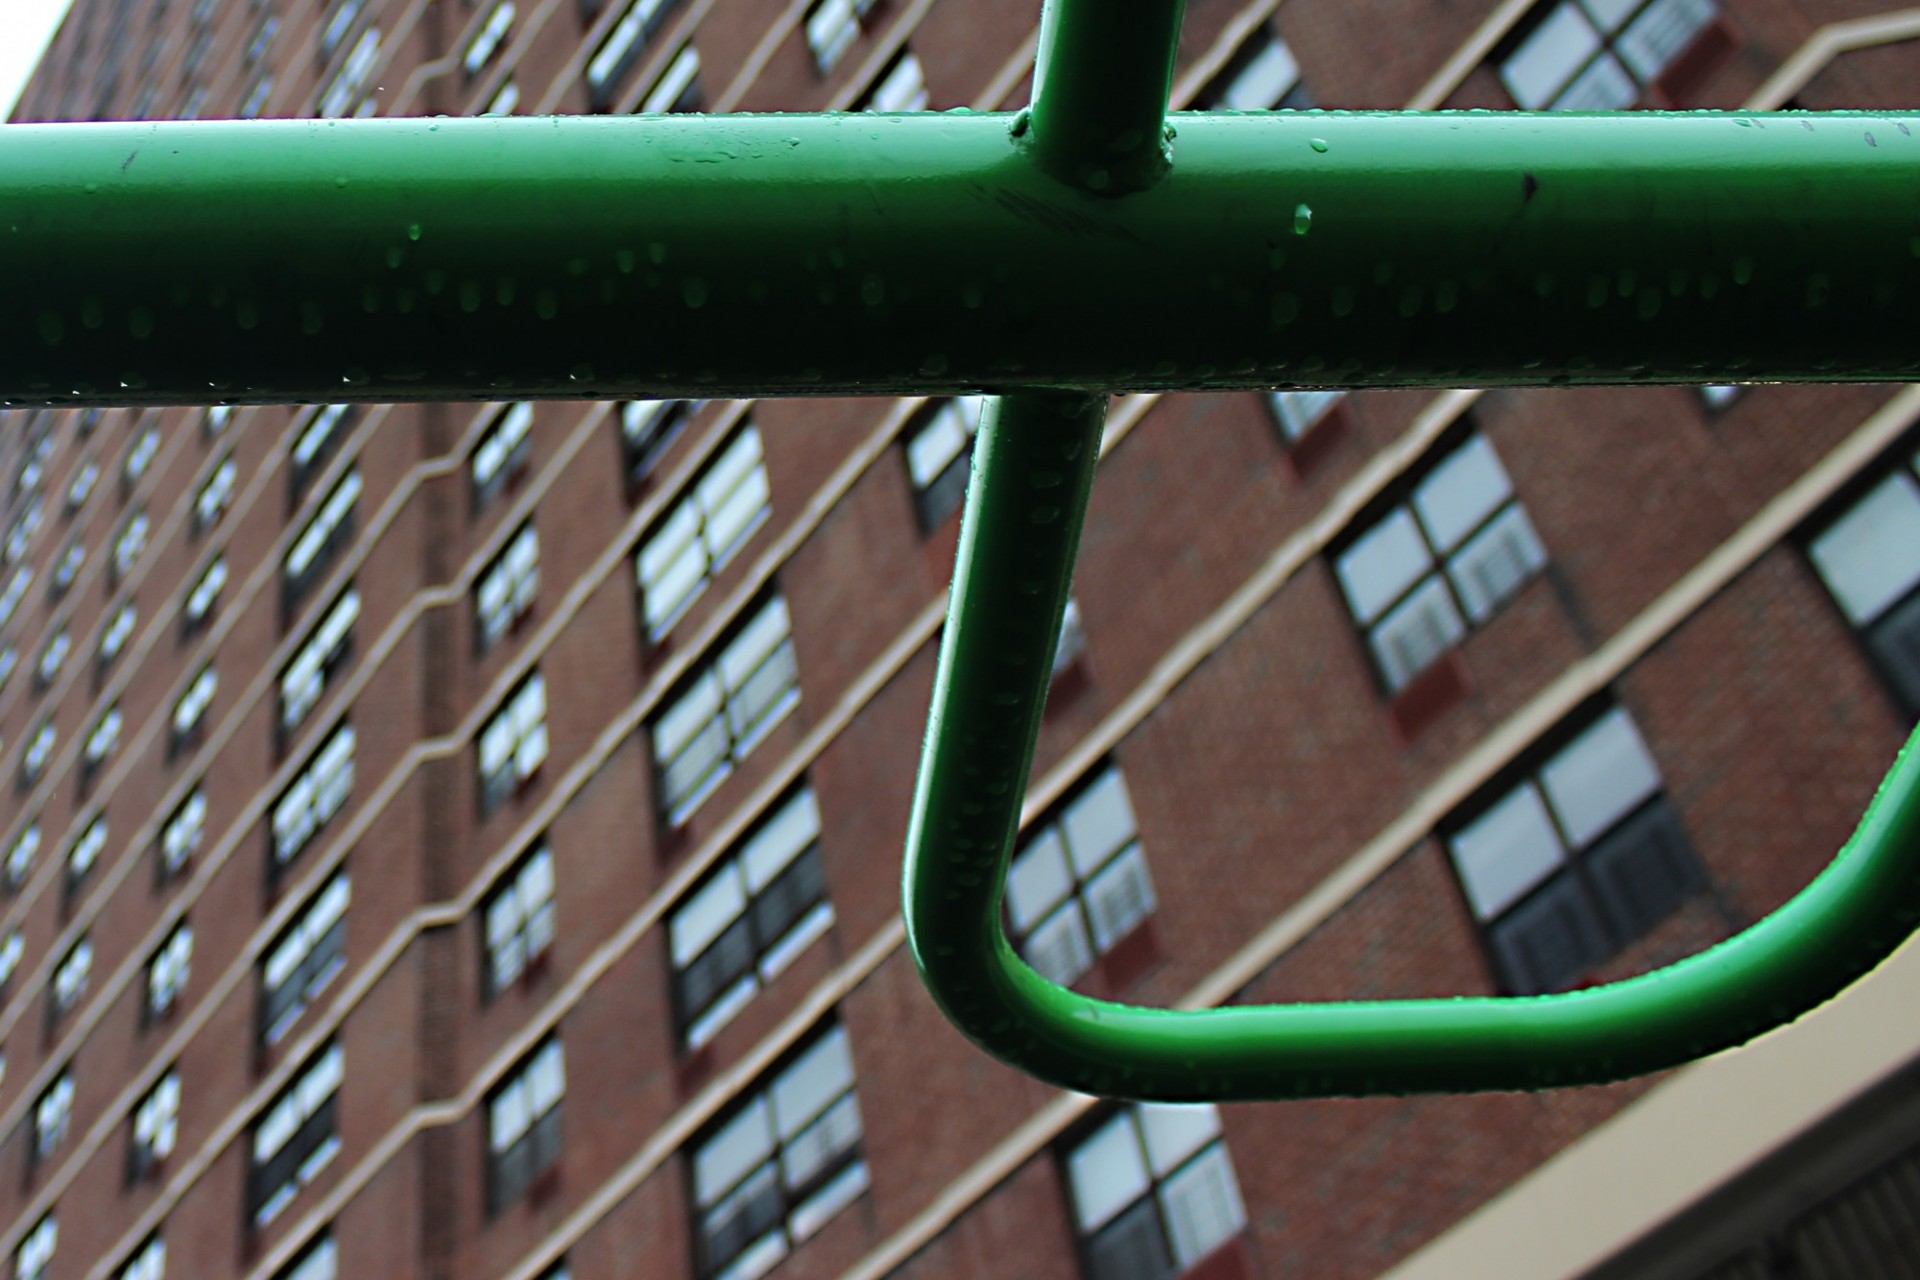 Close-up of raindrops on a green metal cross-bar, perhaps on a playground. A large apartment building with many windows looms in the background.